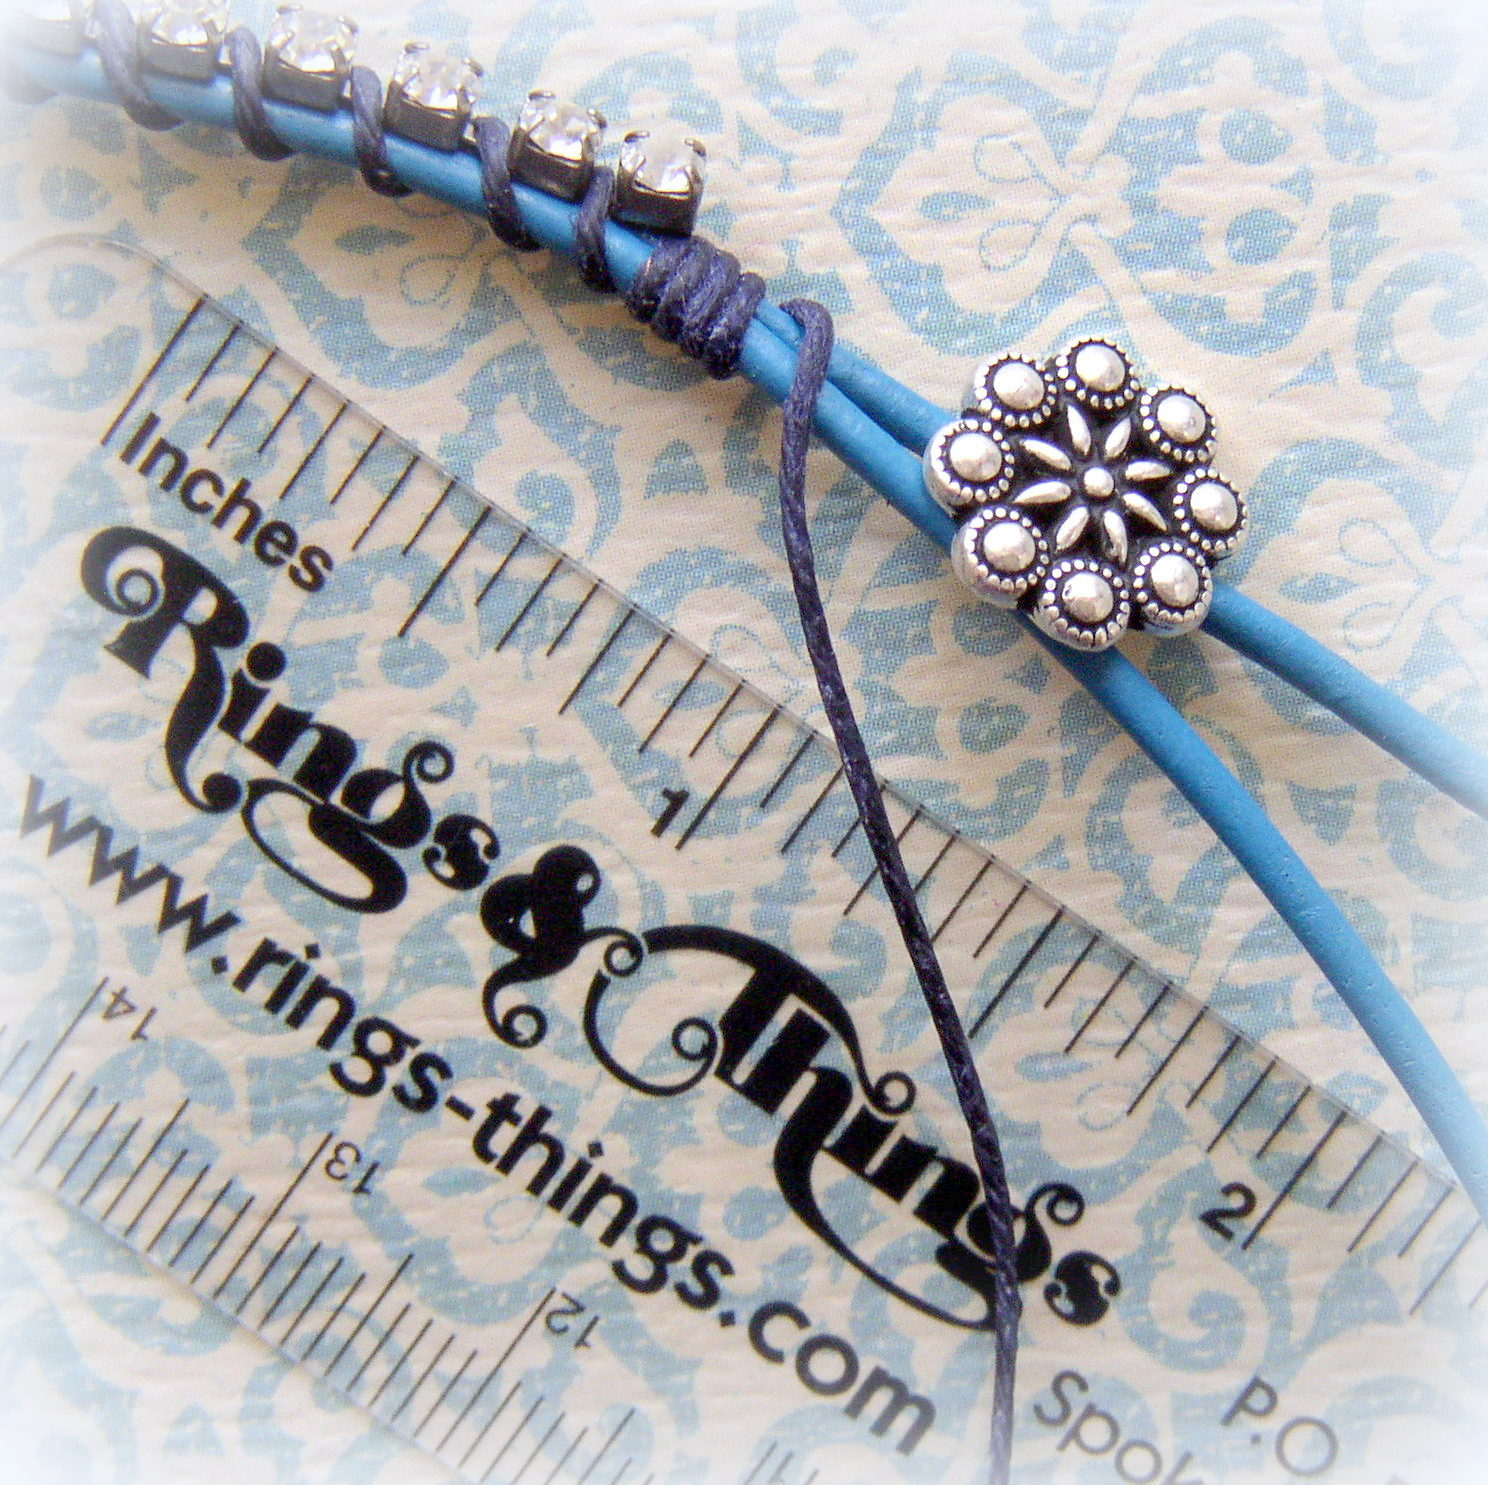 DIY Jewelry Tutorial Rhinestone and Leather Bracelet step 5 finish lashing the rhinestone to the leather cord.